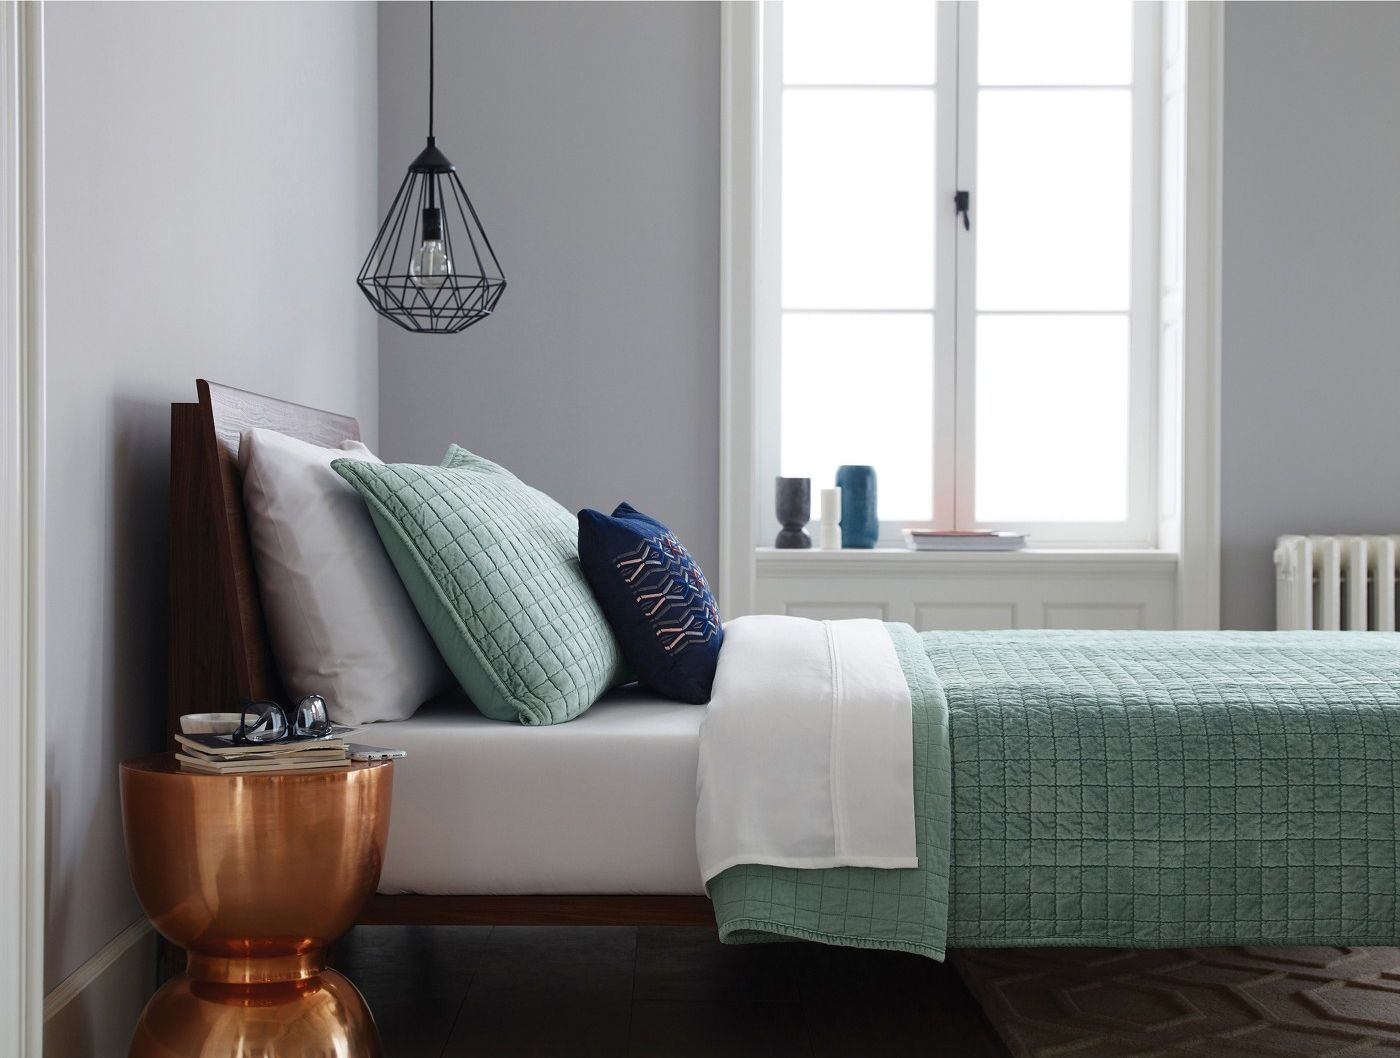 Spring For Some New Sheets (At a Discount) With Target's